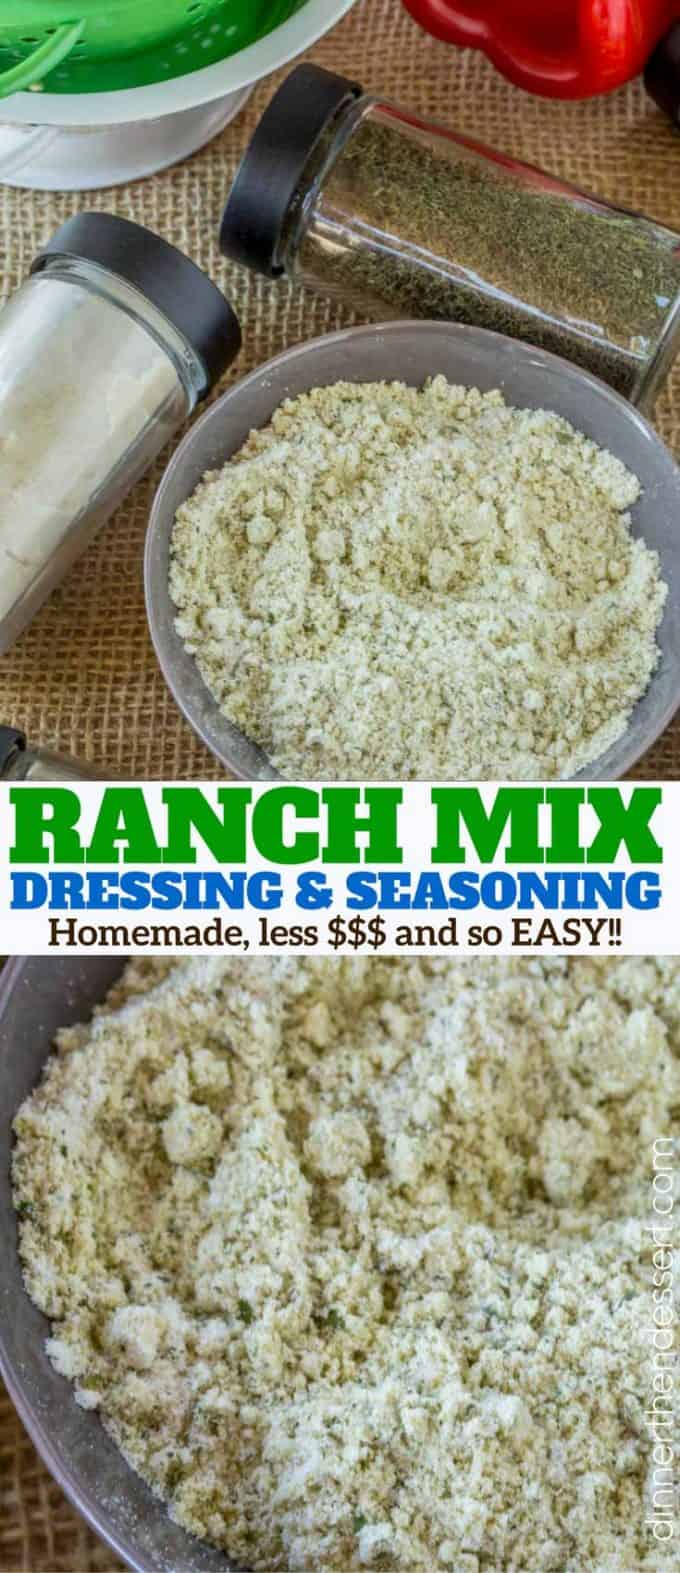 Homemade Ranch Dressing Mix without artificial ingredients and much less sodium! Easy to make and saves money over Hidden Valley Ranch seasoning packets!